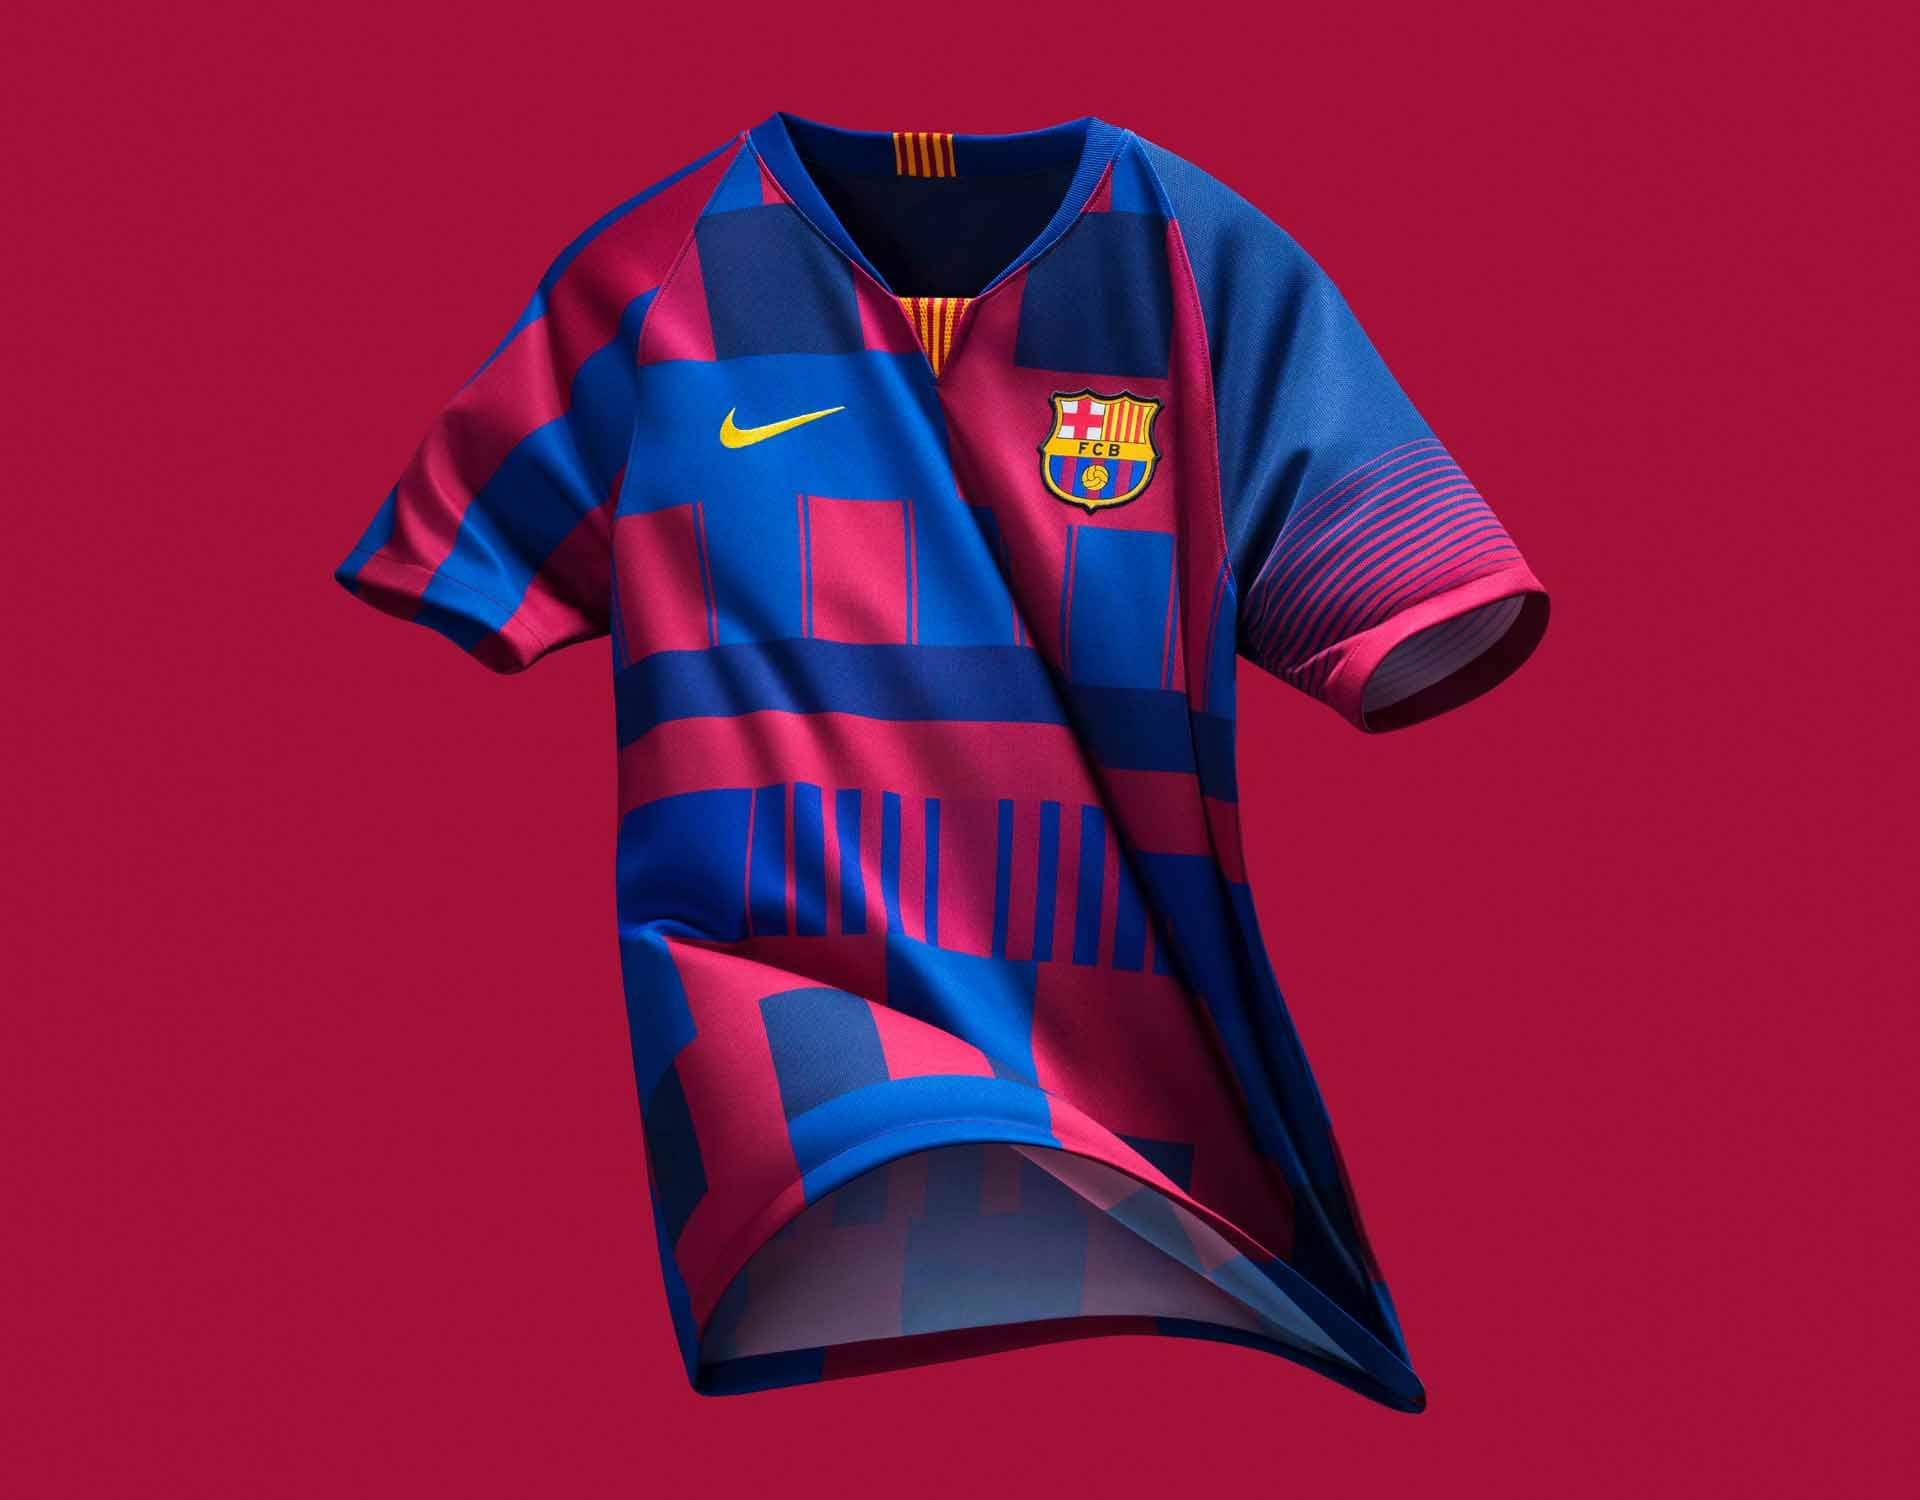 597e81976 Nike Launch Limited Edition Barcelona 20 Year Mash-Up Jersey ...